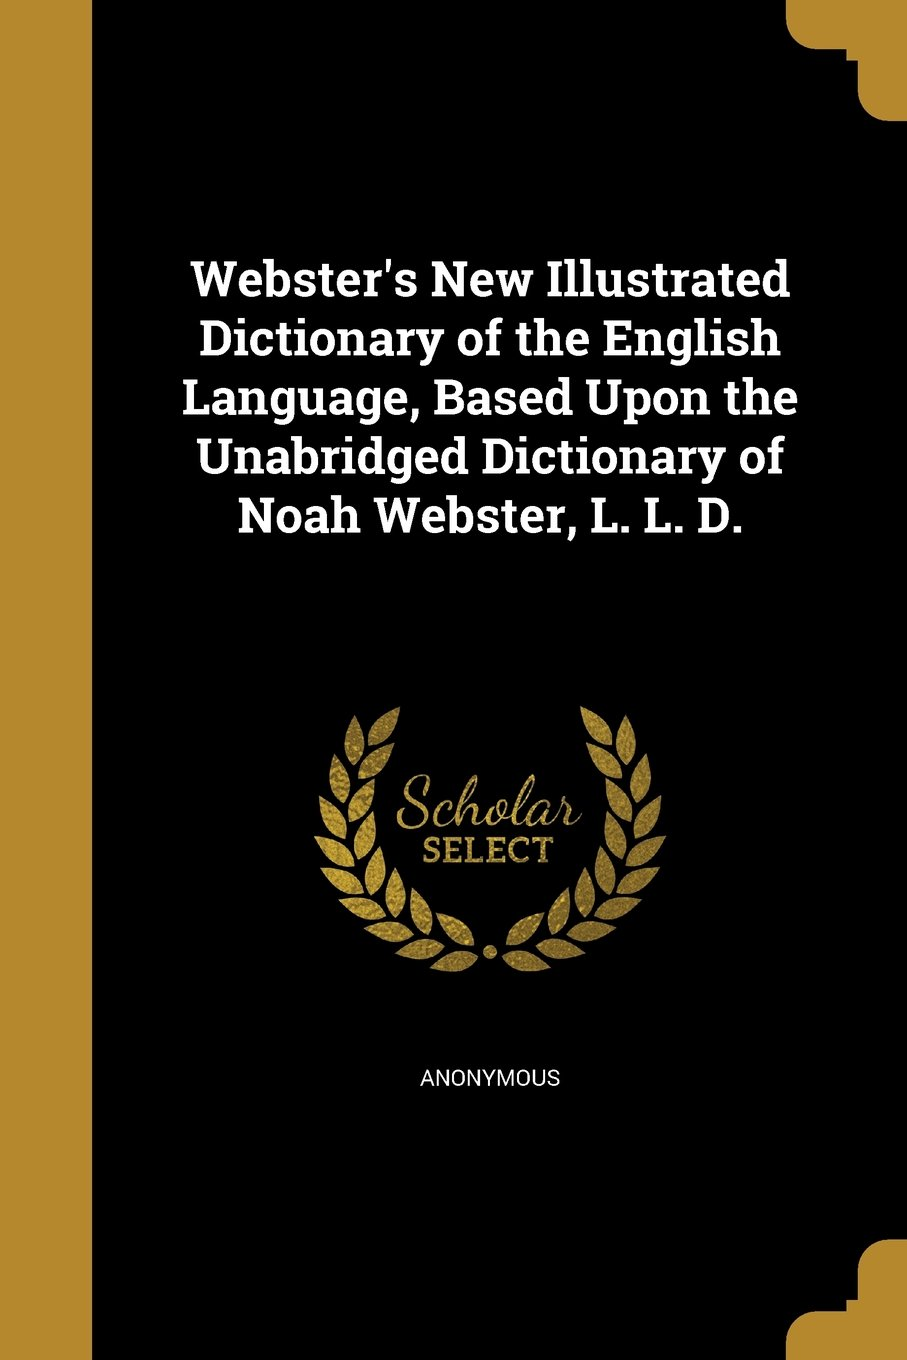 Webster's New Illustrated Dictionary of the English Language, Based Upon  the Unabridged Dictionary of Noah Webster, L. L. D. Paperback – August 28,  2016